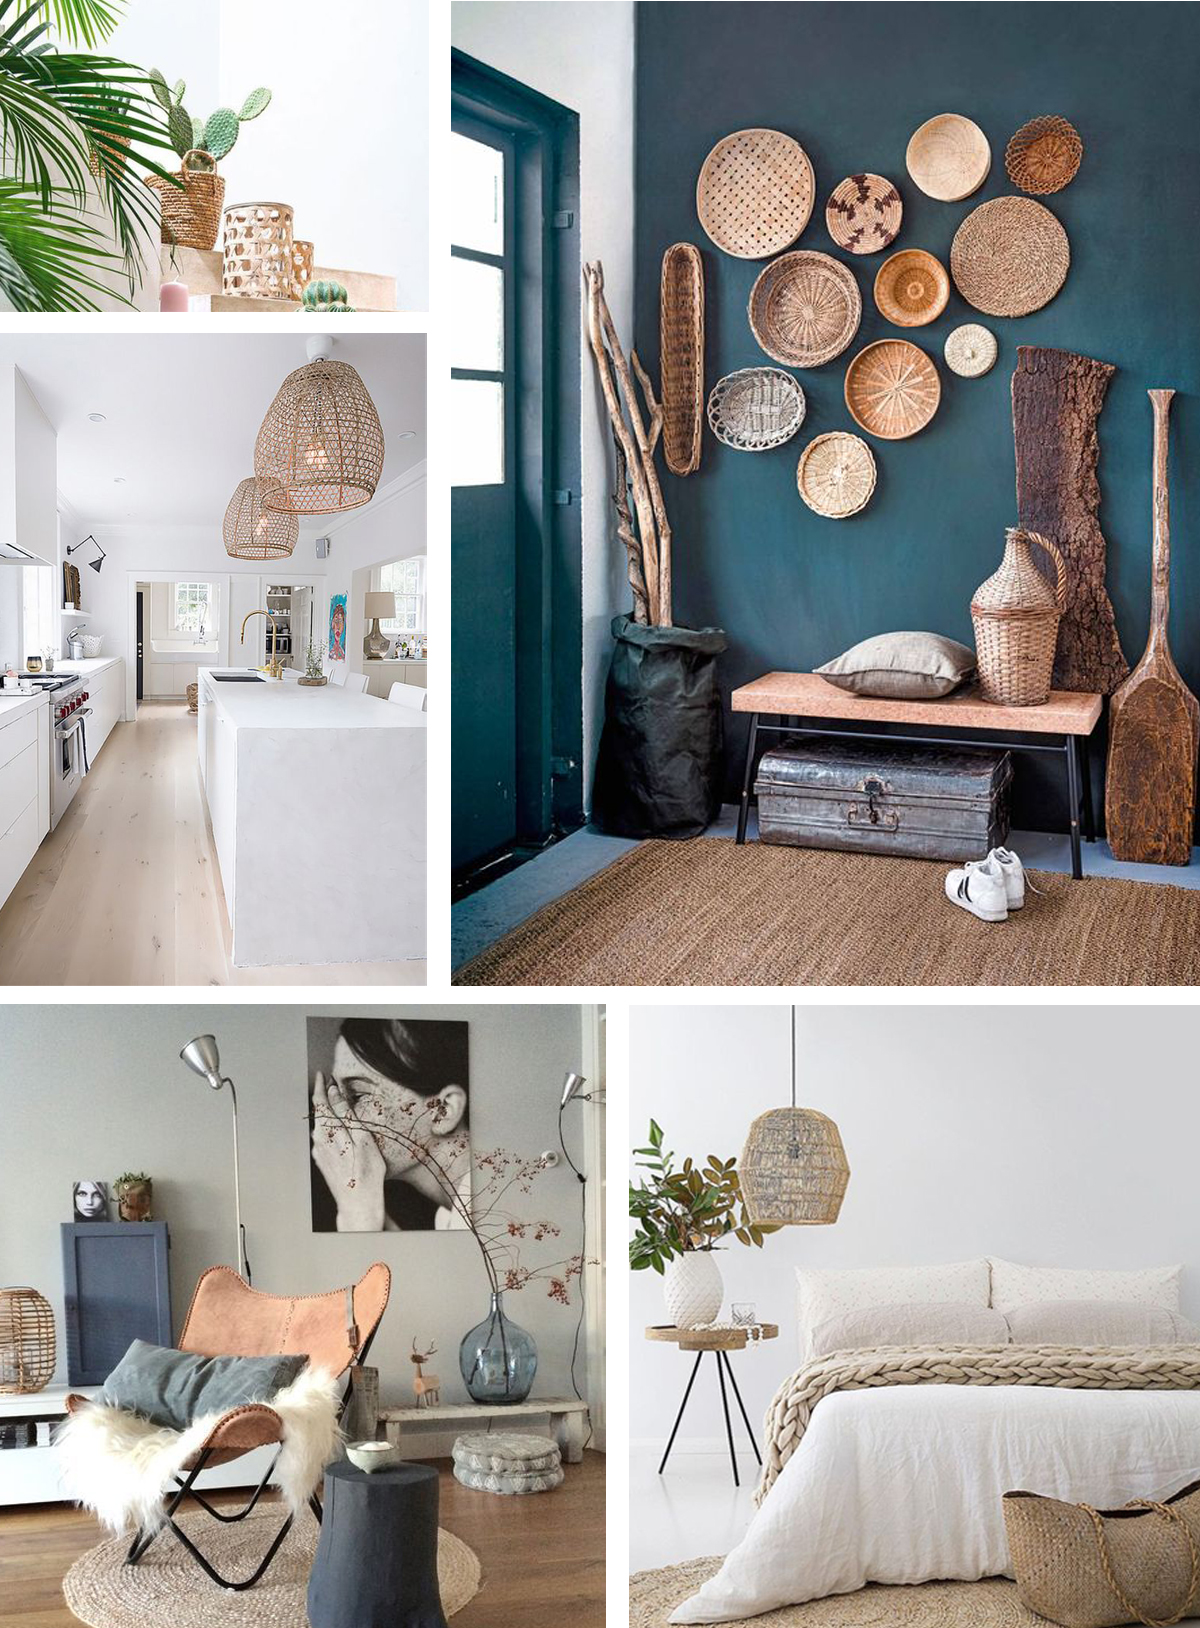 Interieur Grijs En Groen Interieurinspiratie Riet En Rotan In Je Interieur Follow Fashion